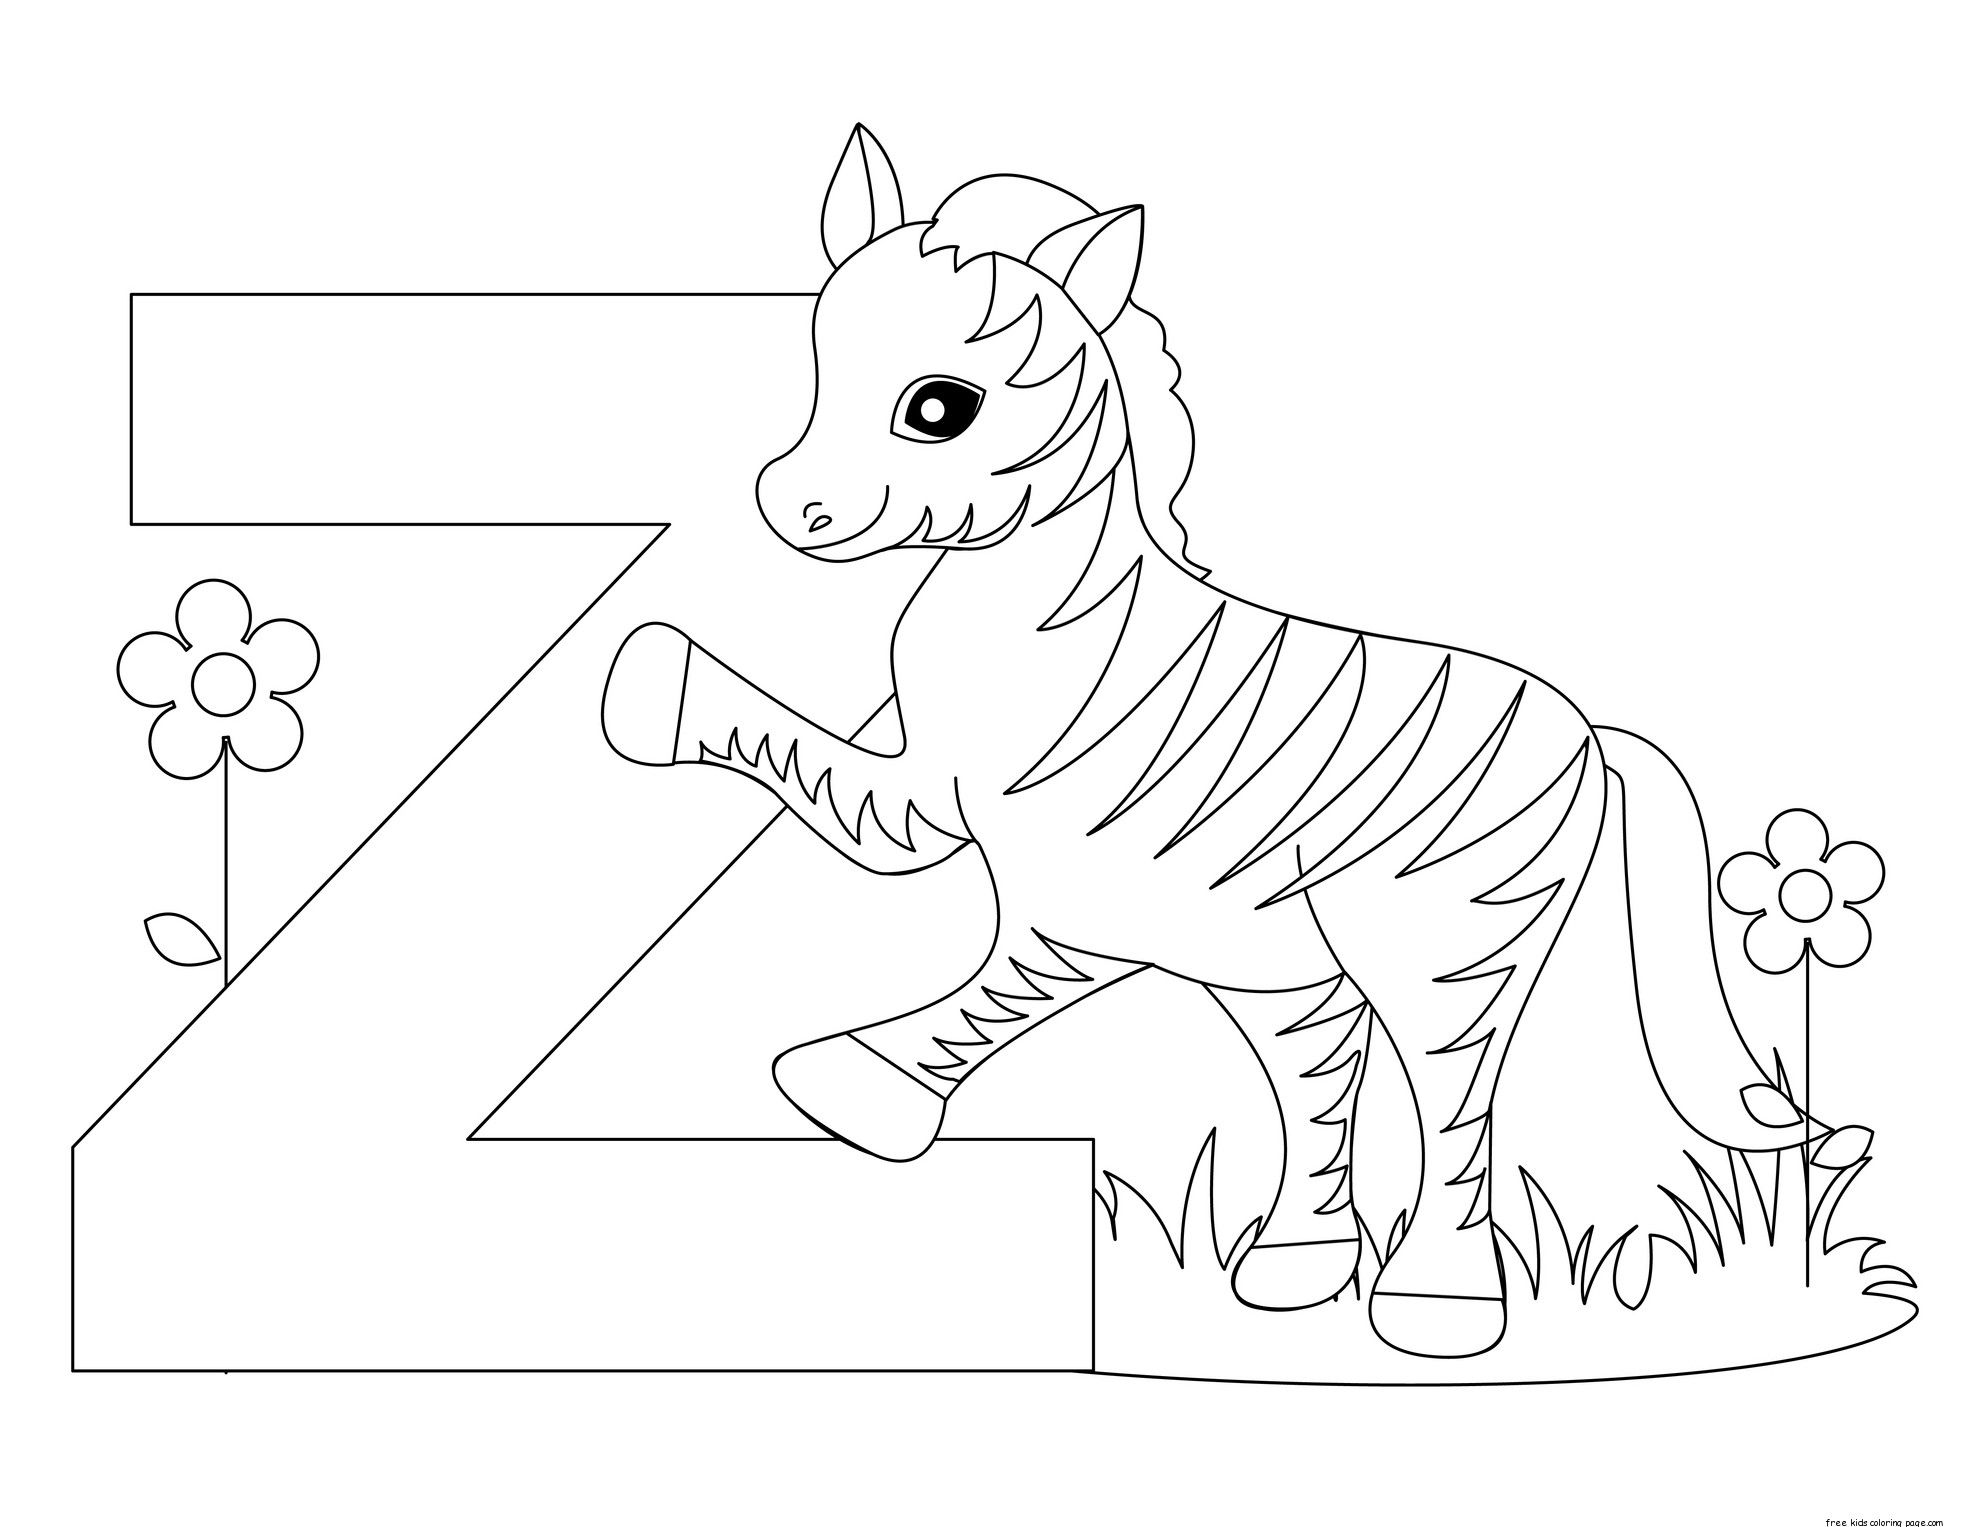 Preschool Animal Worksheets - Google Search